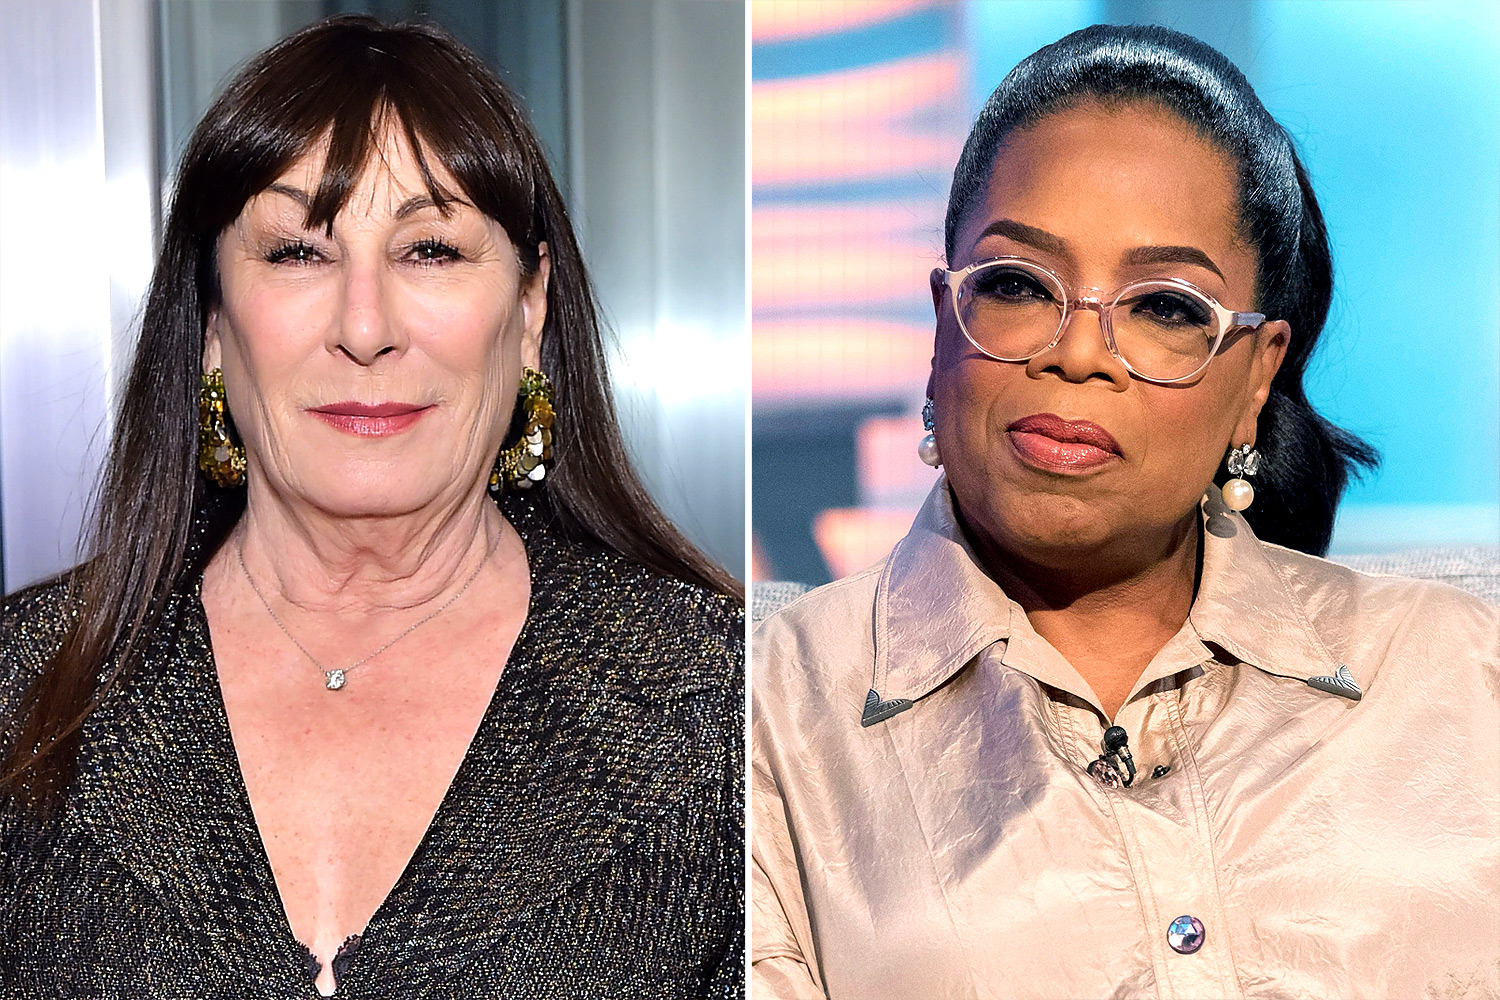 Anjelica Huston and Oprah